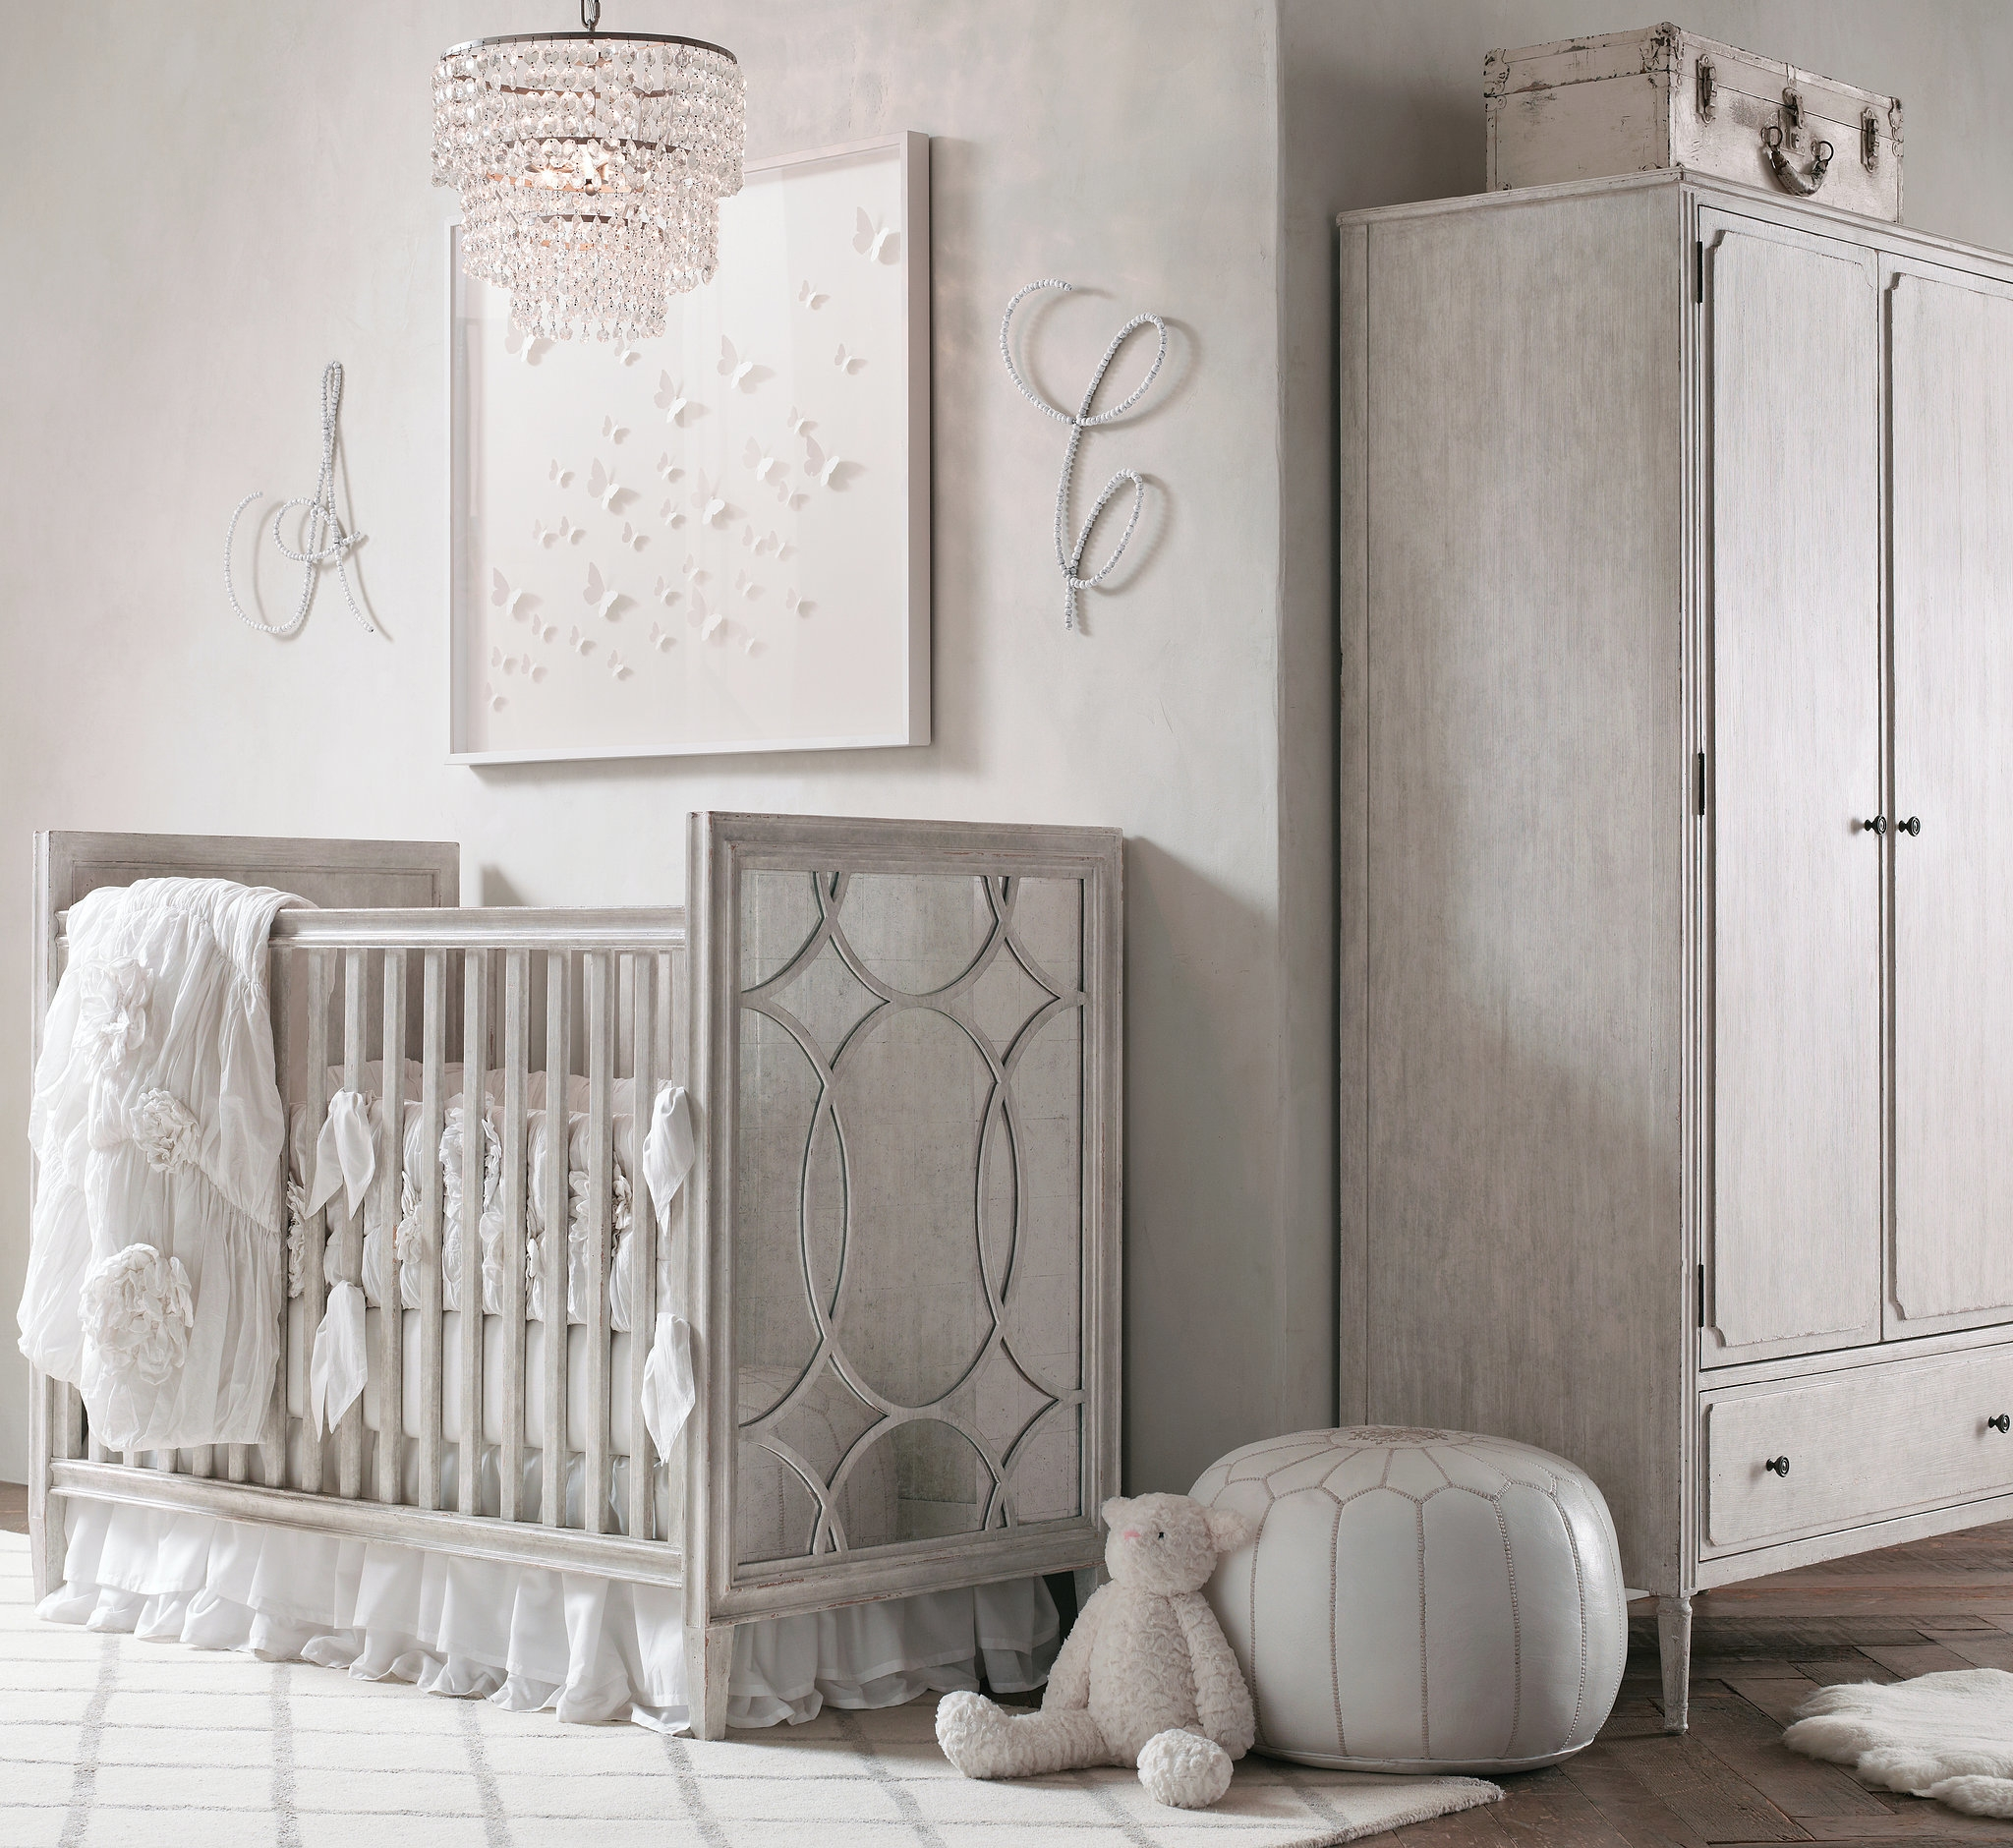 A Soft Glamorous Nursery For A Ba Girl Soho Nursery And Babies Intended For Chandeliers For Girl Nursery (View 21 of 25)